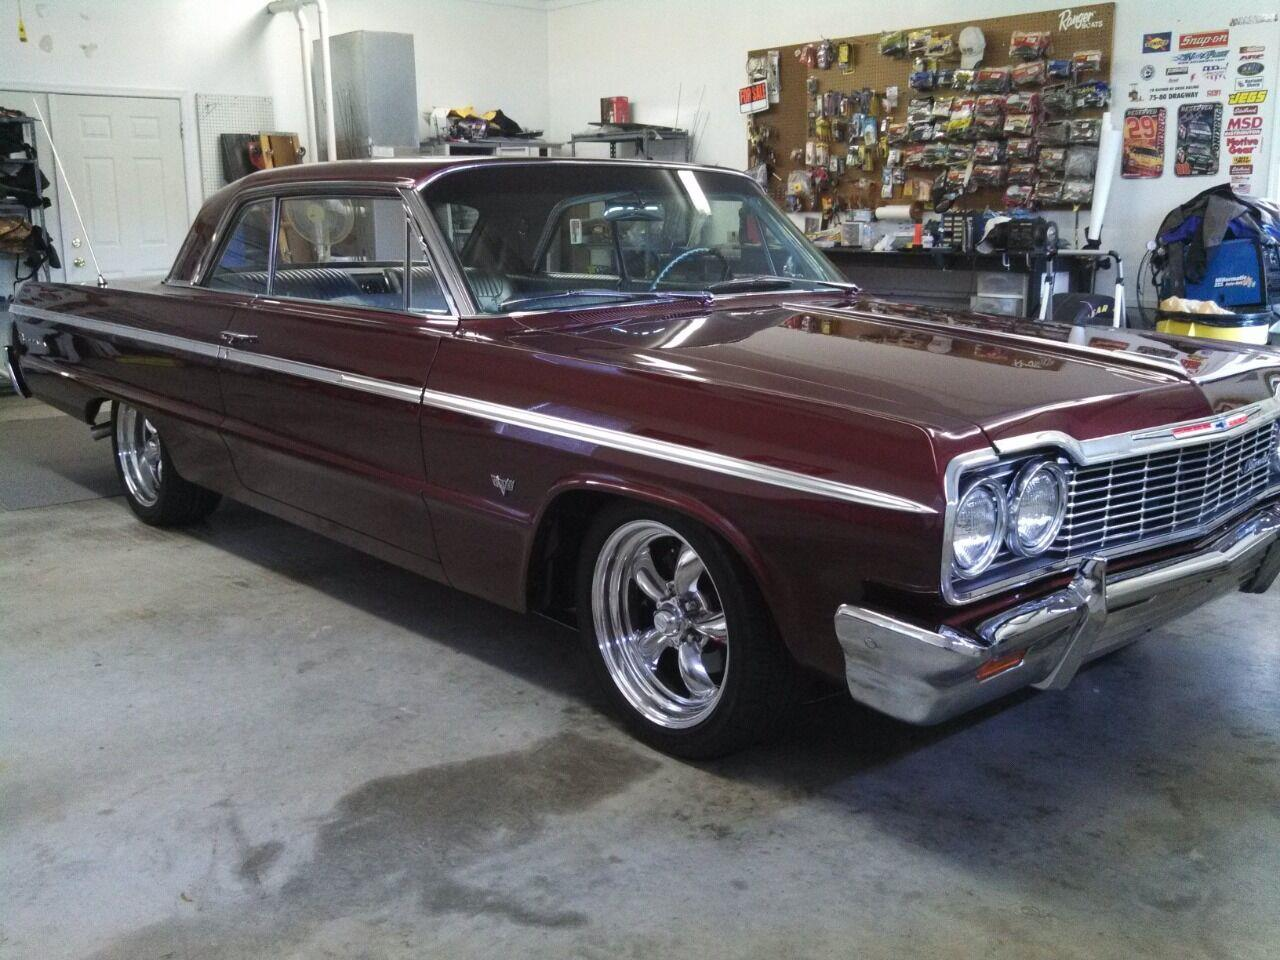 1964 Chevrolet Impala SS (CC-1421442) for sale in Clarksburg, Maryland